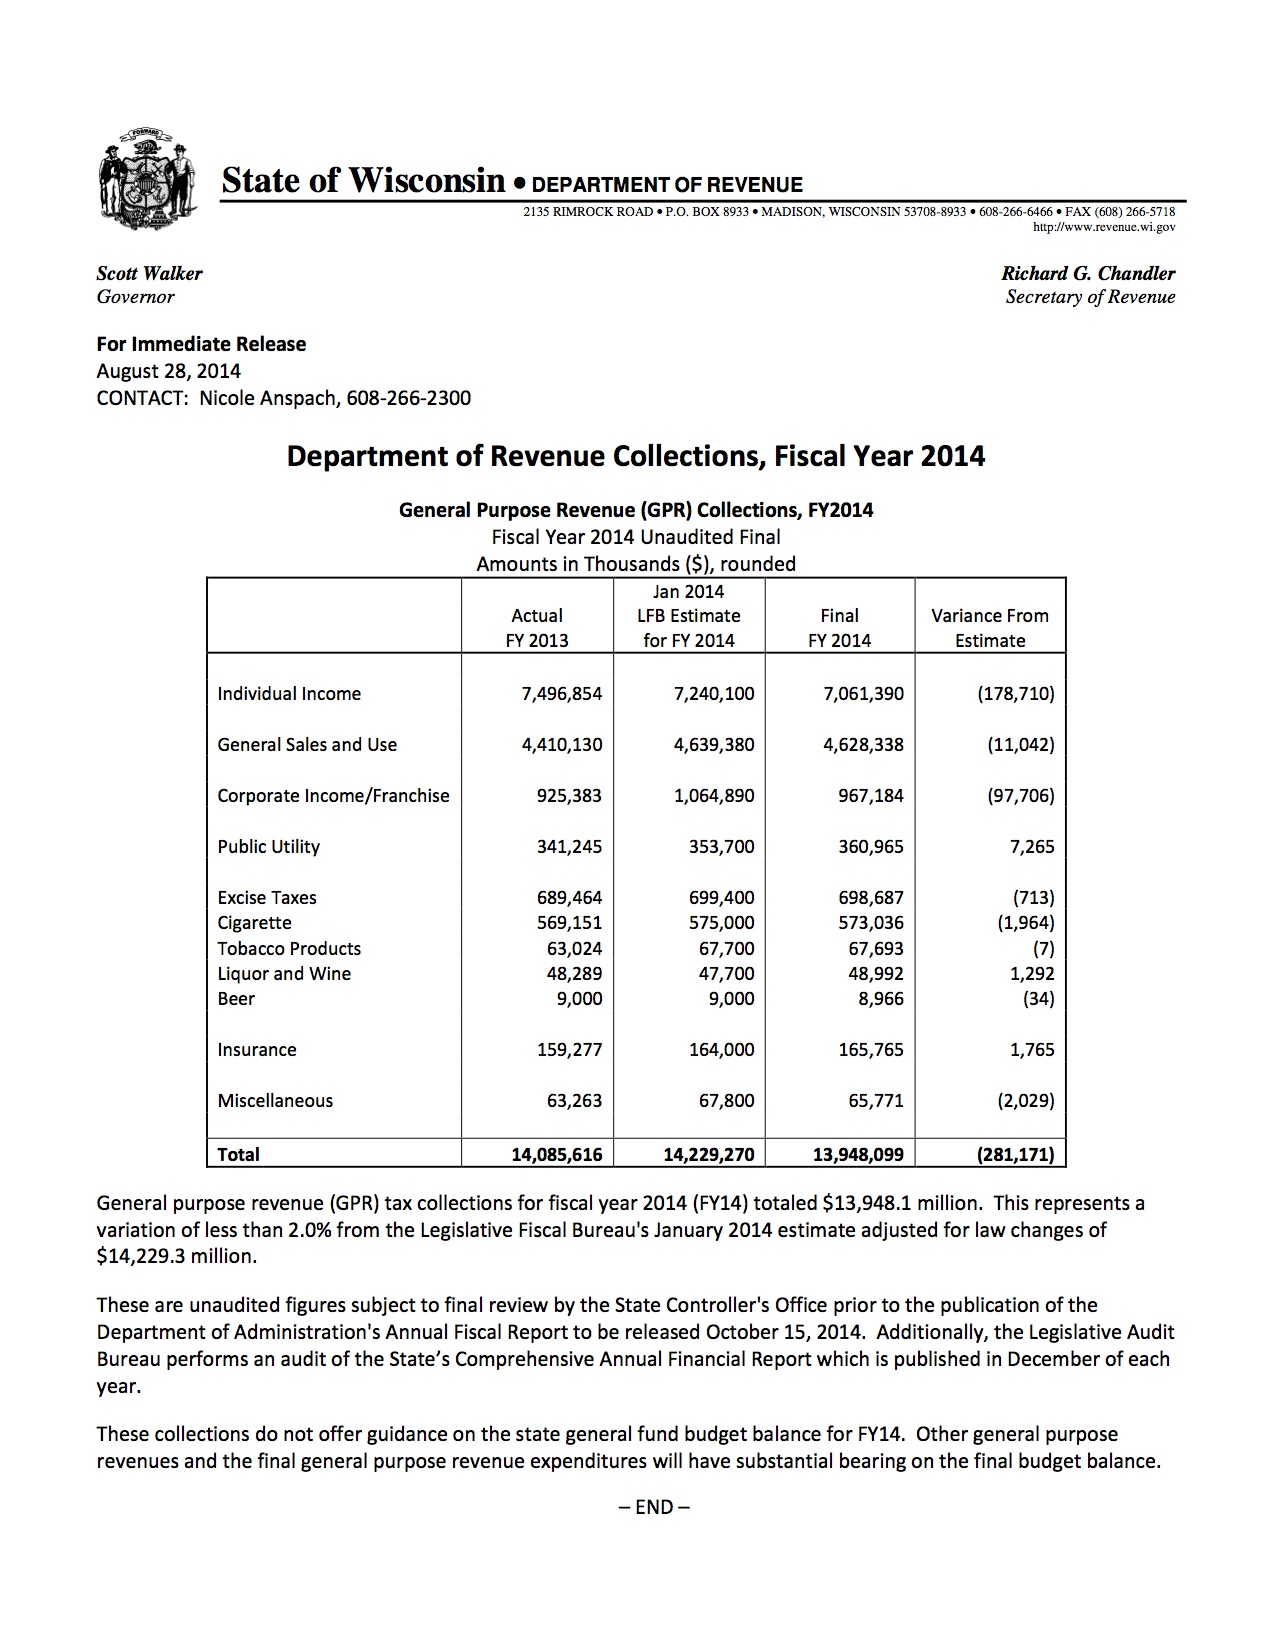 fy 2014 state revenue collections